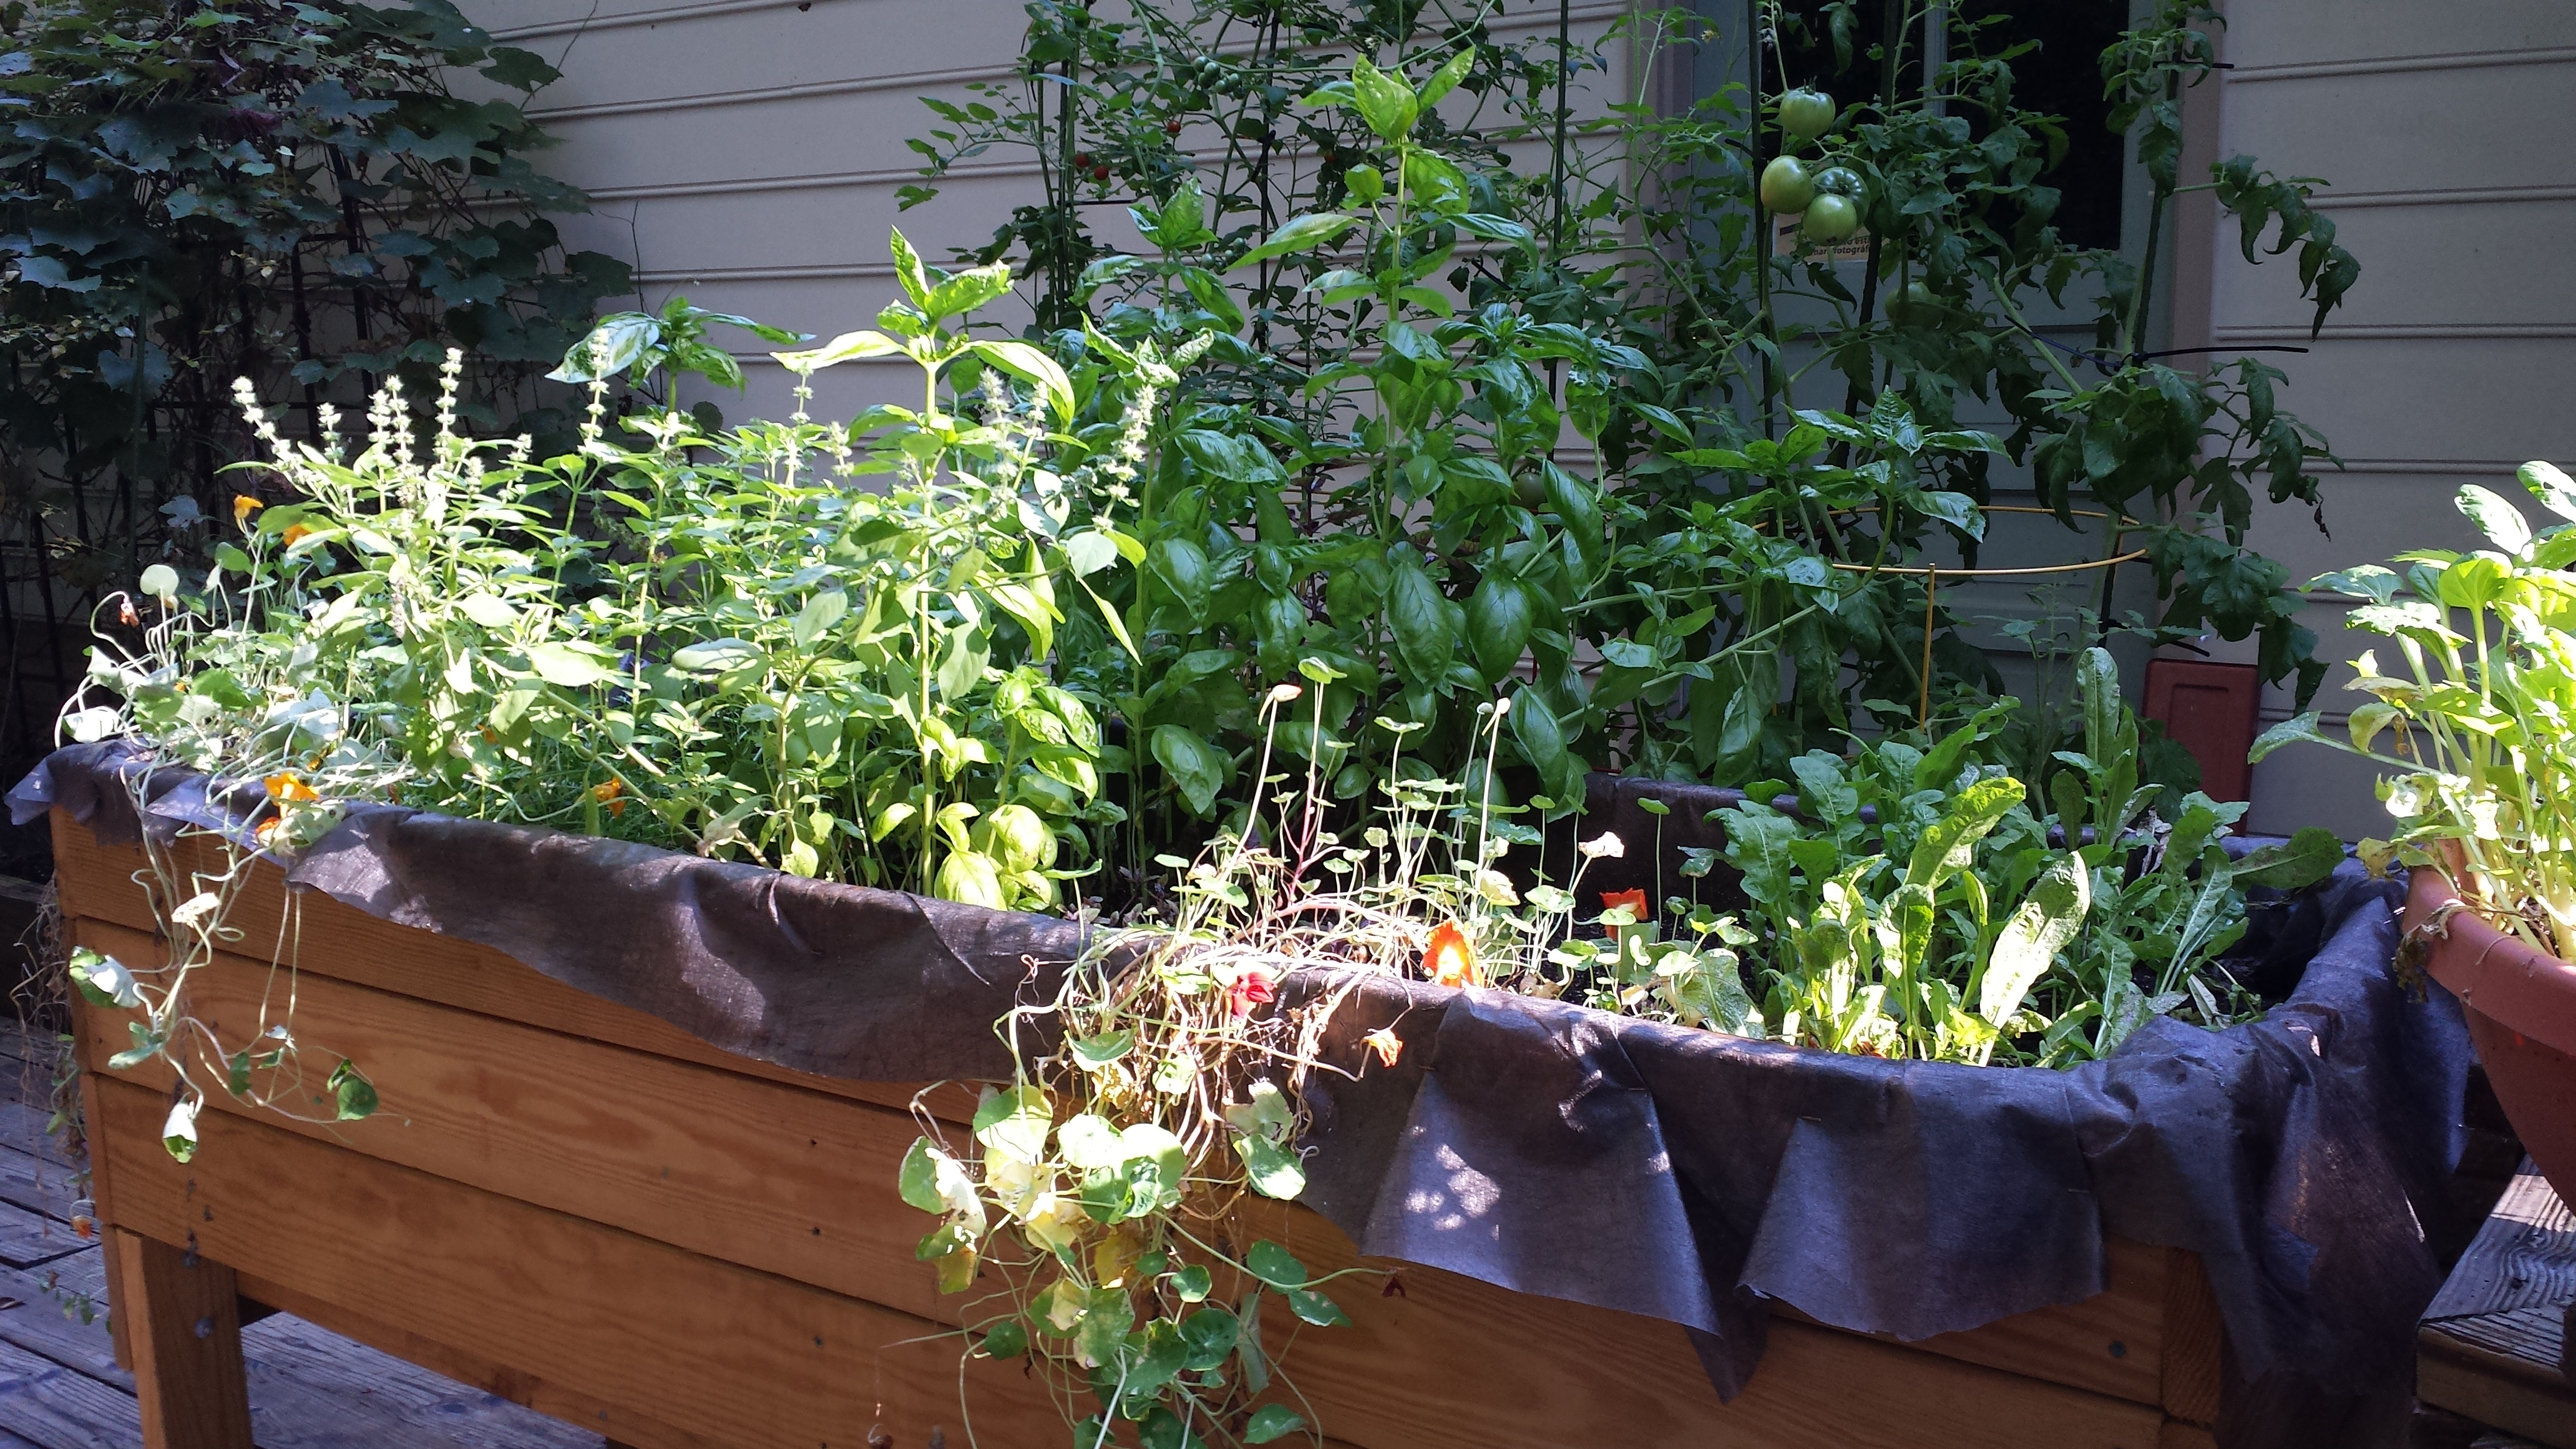 The basil is overtaking the raised planter bed